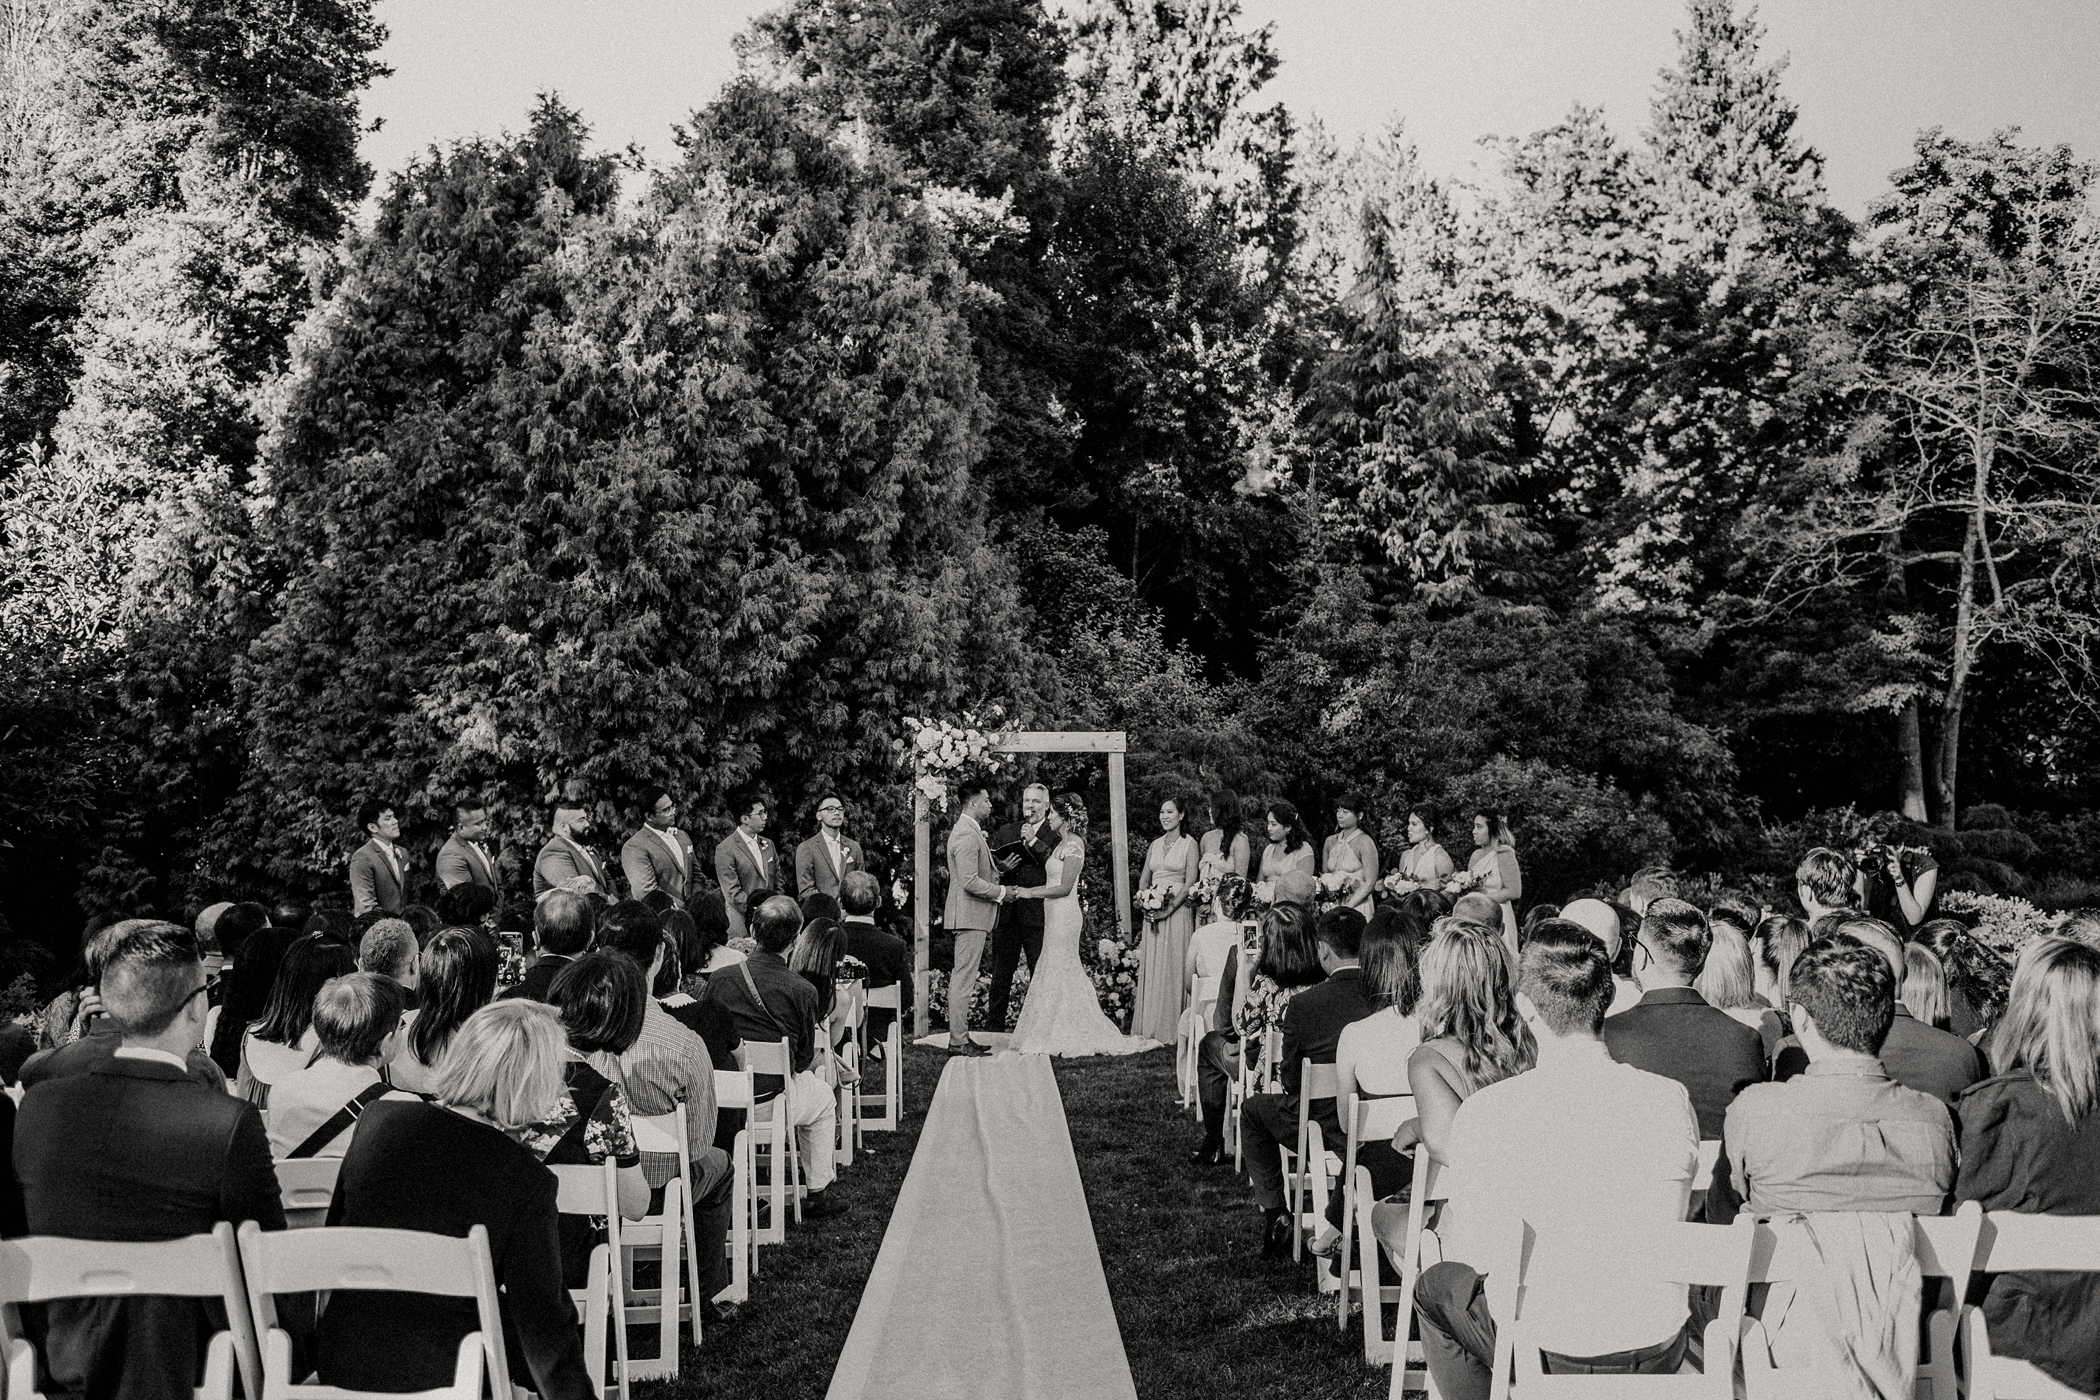 048-kaoverii-silva-vd-wedding-cecil-green-ubc-nitobe-garden-photography-blog.png